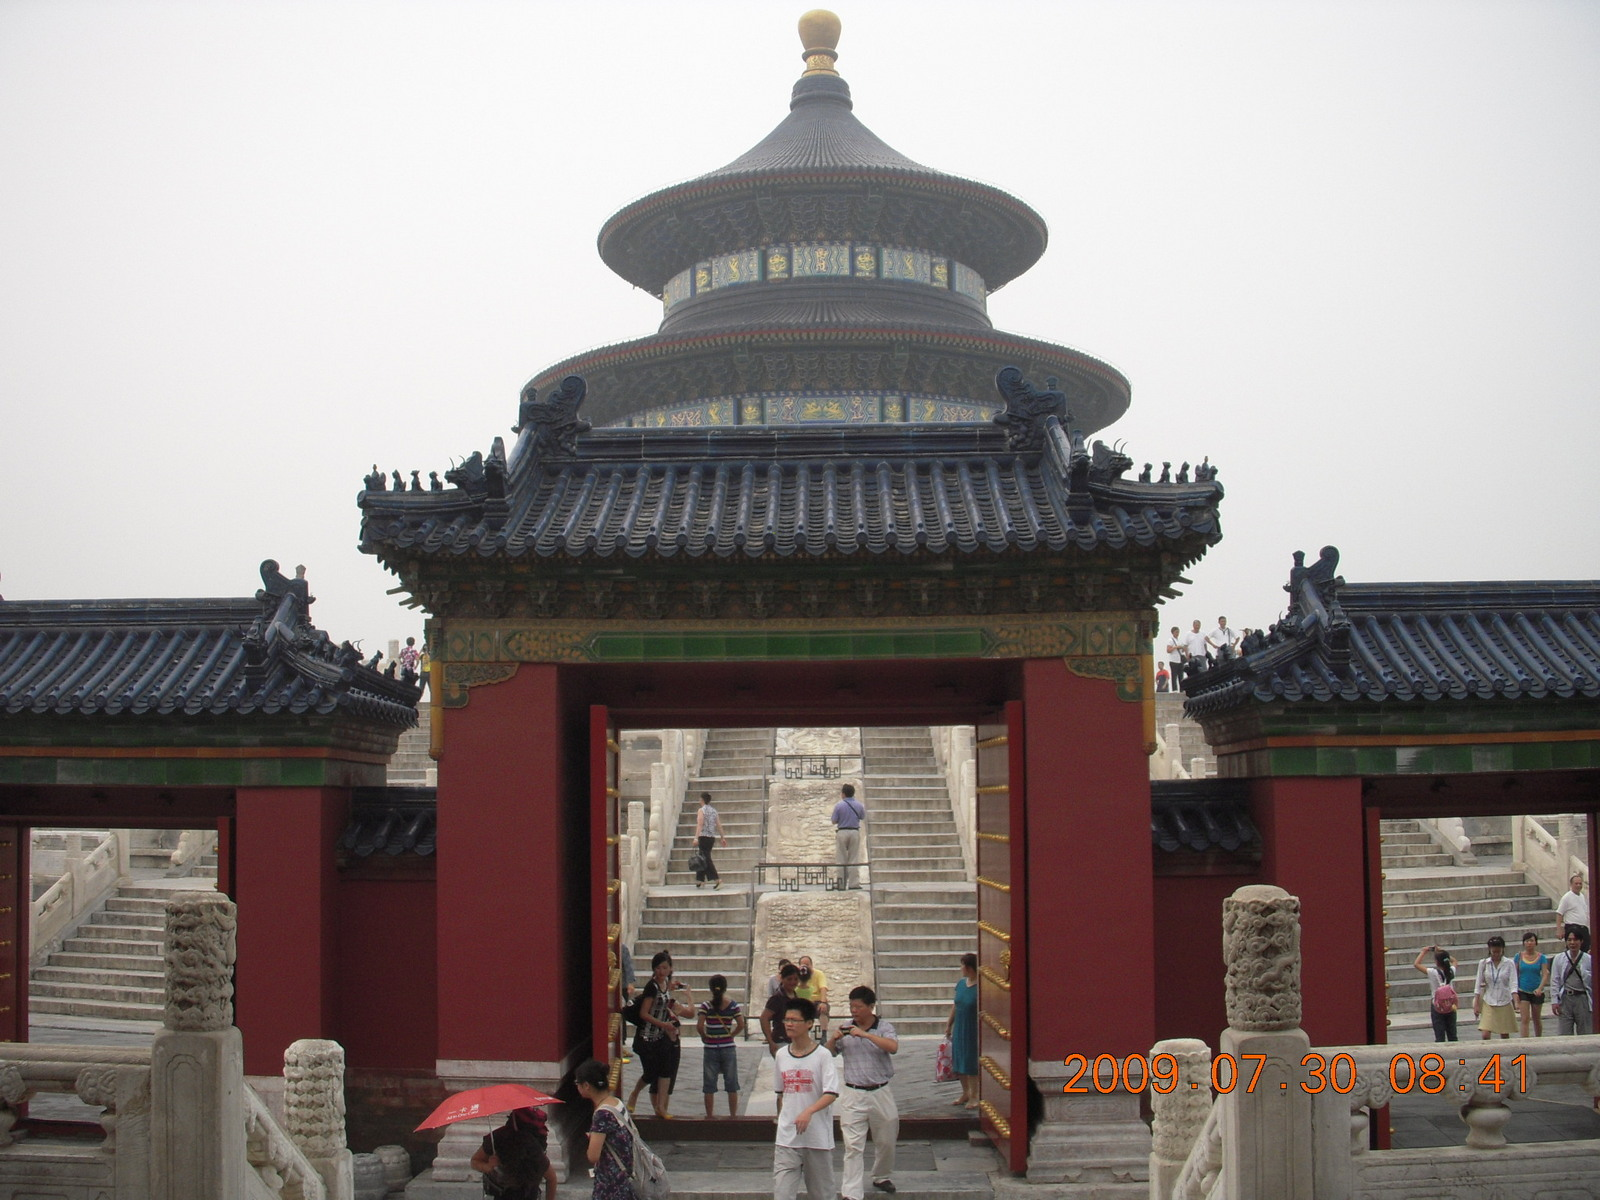 China eclipse - Beijing - Temple of Heaven